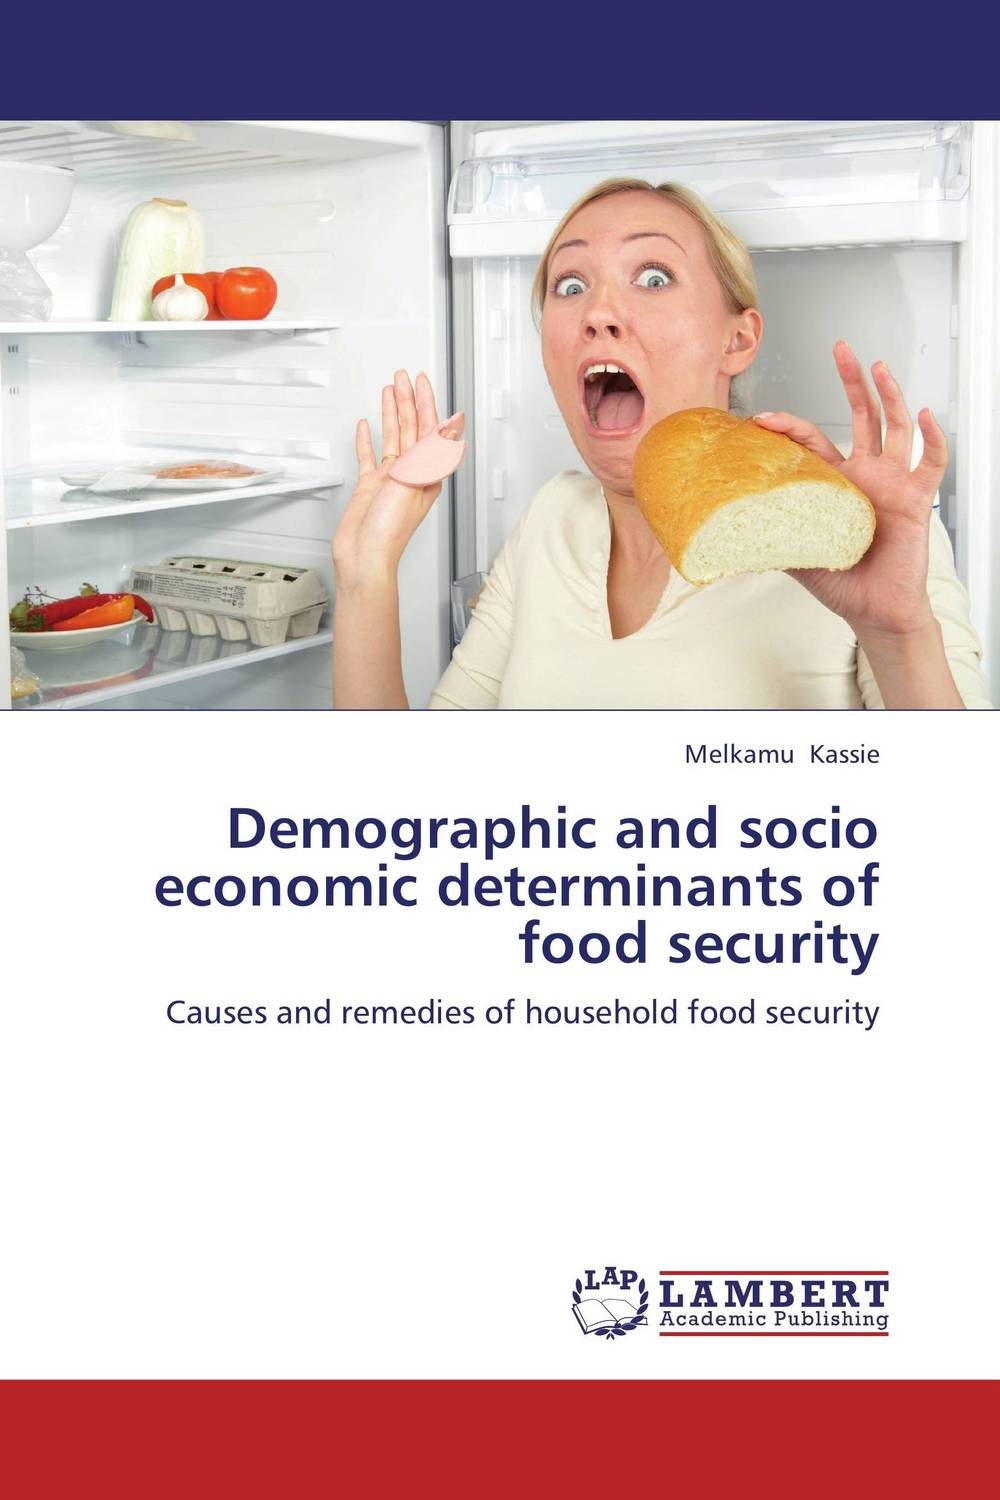 где купить Demographic and socio economic determinants of food security по лучшей цене